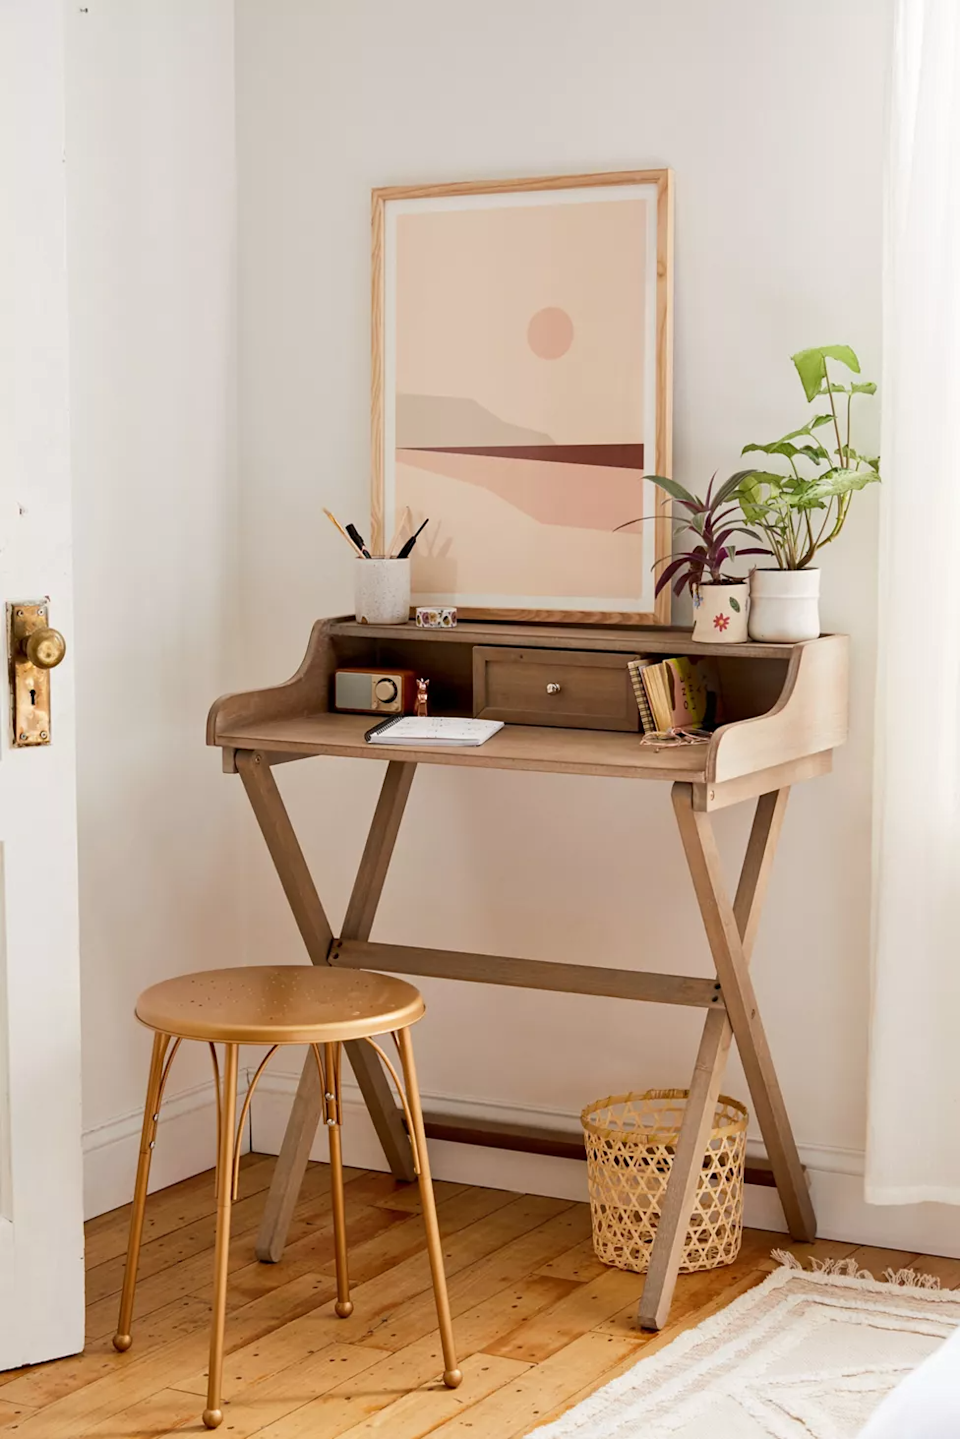 "<h3>Urban Outfitters Cory Folding Desk</h3><br>This chic-compact desk style boasts a hidden fold-up punch — meaning you can tuck this bad boy out of sight when you're not using it to be a WFH boss.<br><br><strong>Urban Outfitters</strong> Cory Folding Desk, $, available at <a href=""https://go.skimresources.com/?id=30283X879131&url=https%3A%2F%2Fwww.urbanoutfitters.com%2Fshop%2Fcory-folding-desk"" rel=""nofollow noopener"" target=""_blank"" data-ylk=""slk:Urban Outfitters"" class=""link rapid-noclick-resp"">Urban Outfitters</a>"